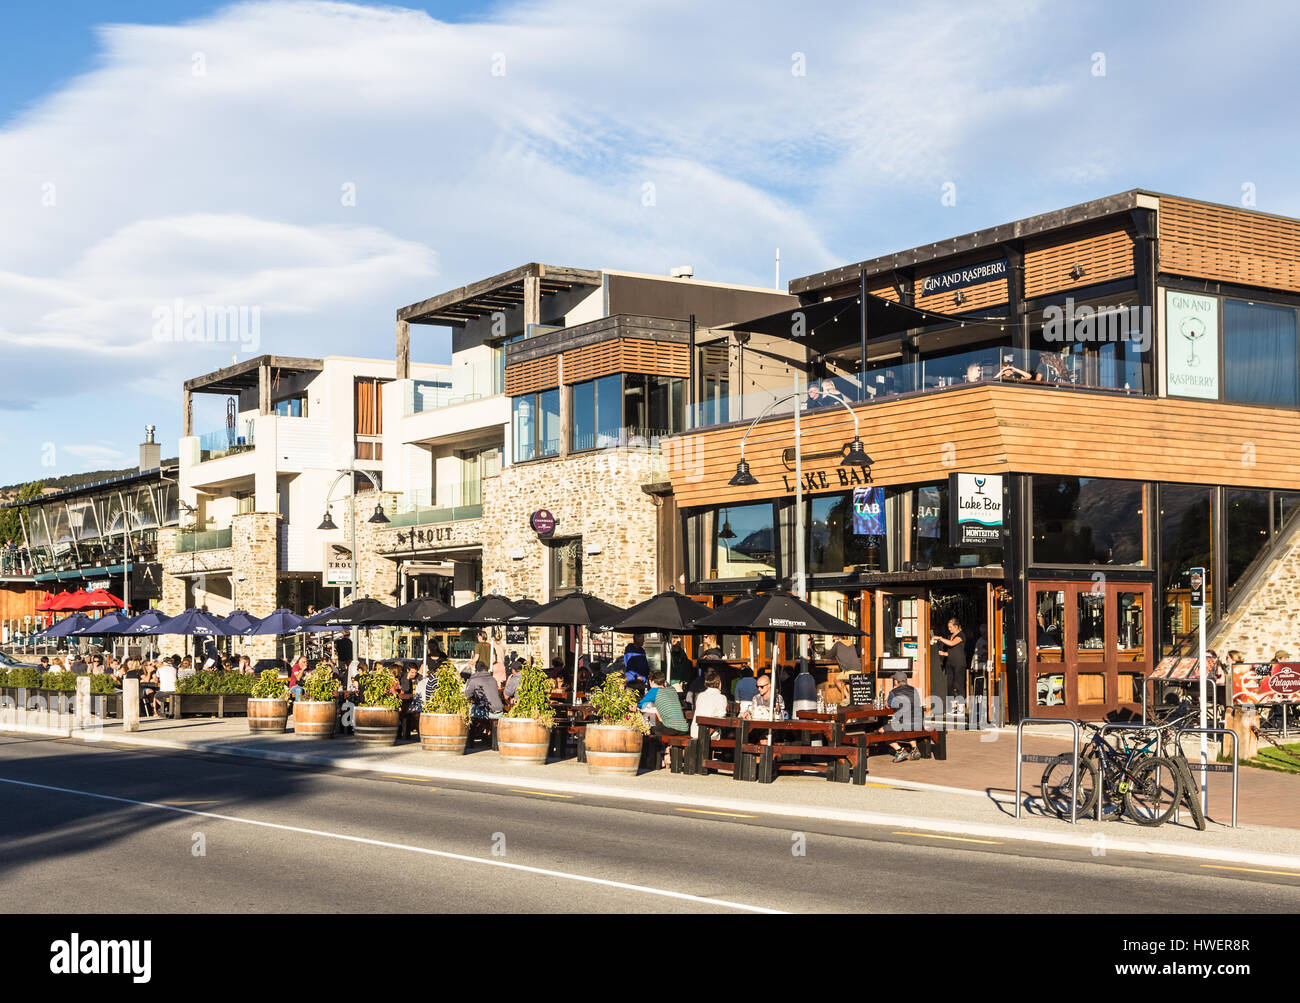 WANAKA, NEW ZEALAND - MARCH 5, 2017: Tourists and locals enjoy a drink on the trendy sidewalk bar and restaurants - Stock Image